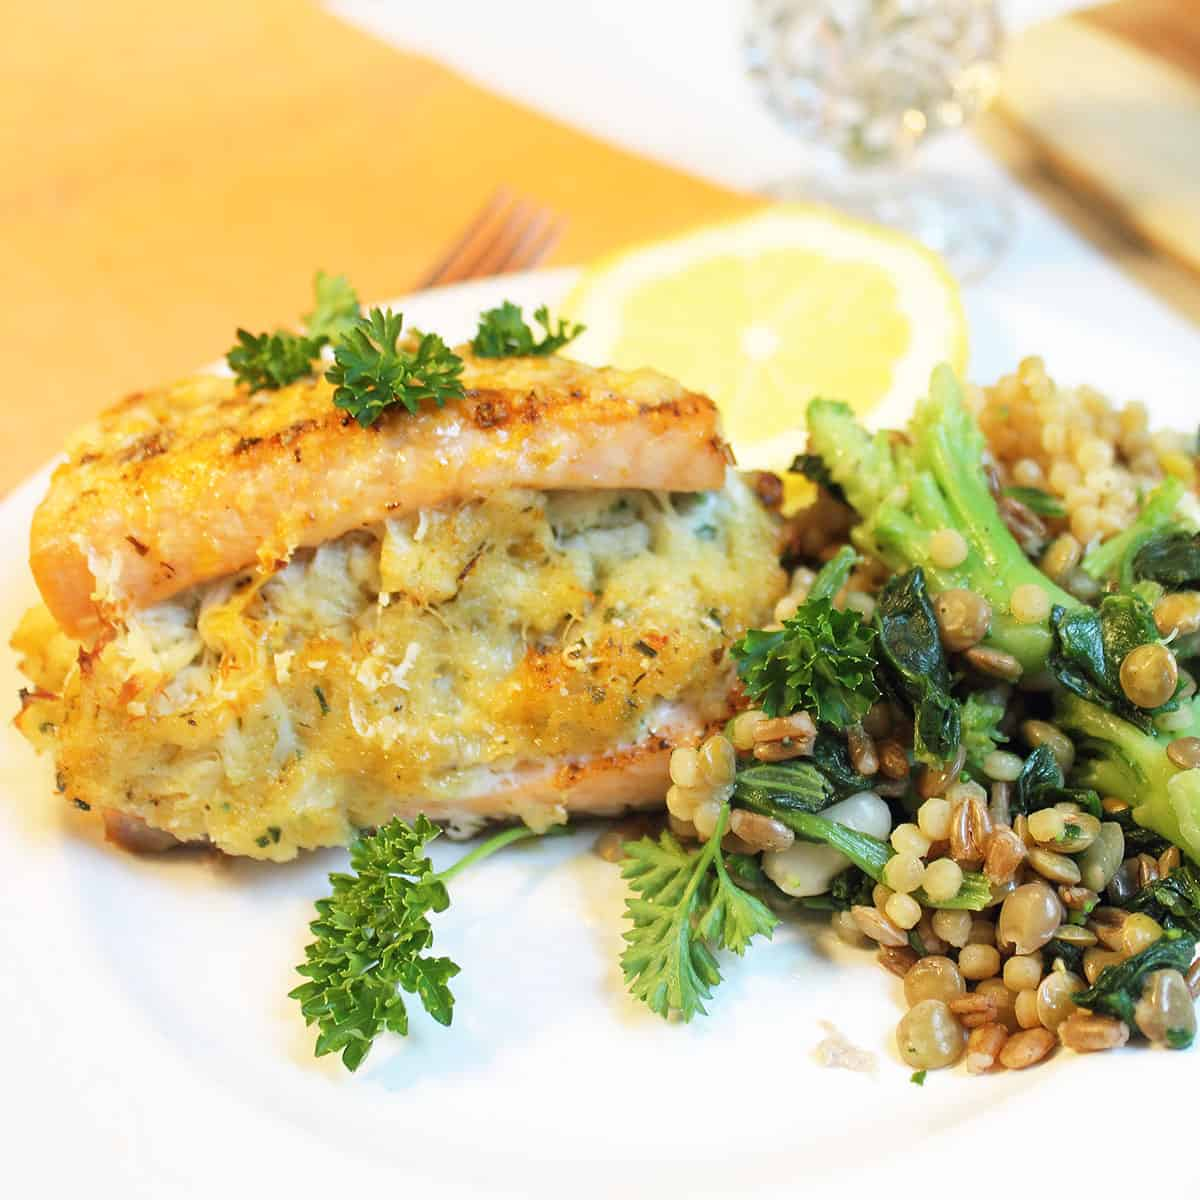 Closeup of crab stuffing in salmon on white plate.